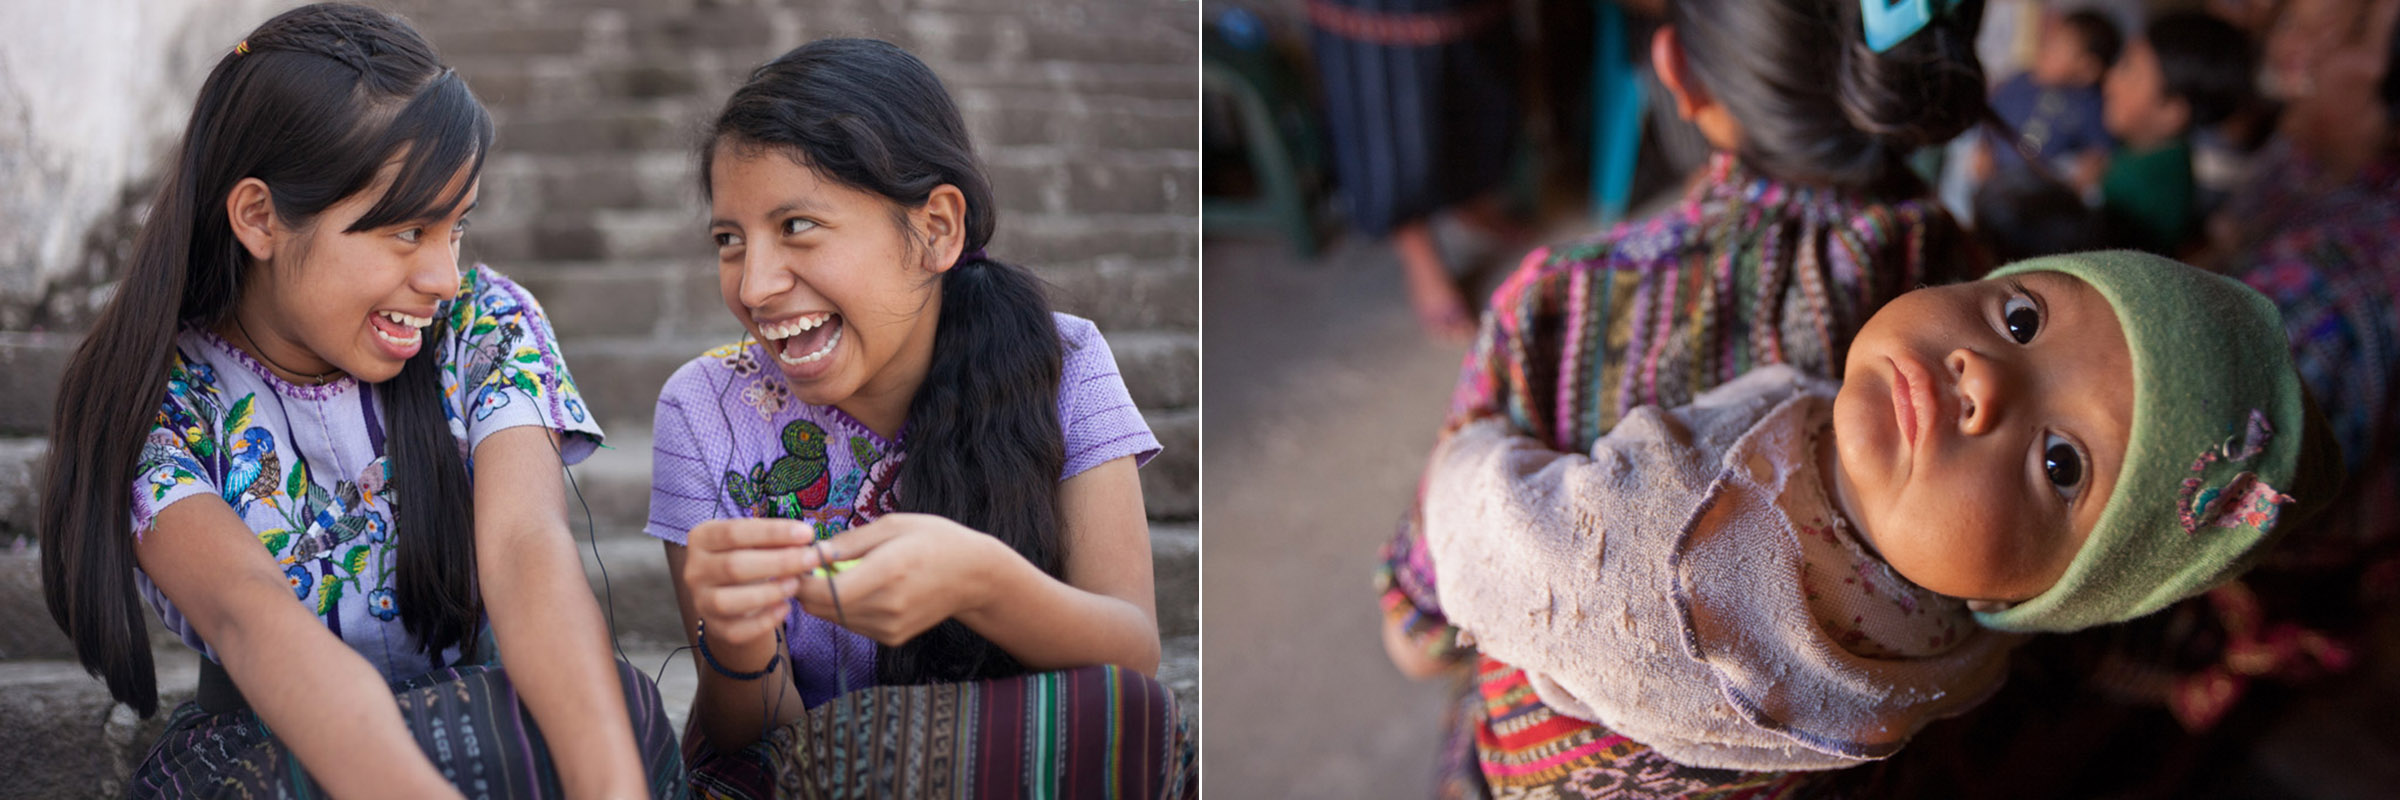 Left: Leticia and Lisette share headphones and listen to music in the town square after a mentorship session in Santiago Atitlan. // Right: An infant is strapped to the back of her mother in their home in Solola, Guatemala. The poorest 20% of Guatemalan women have an average of 8 children.